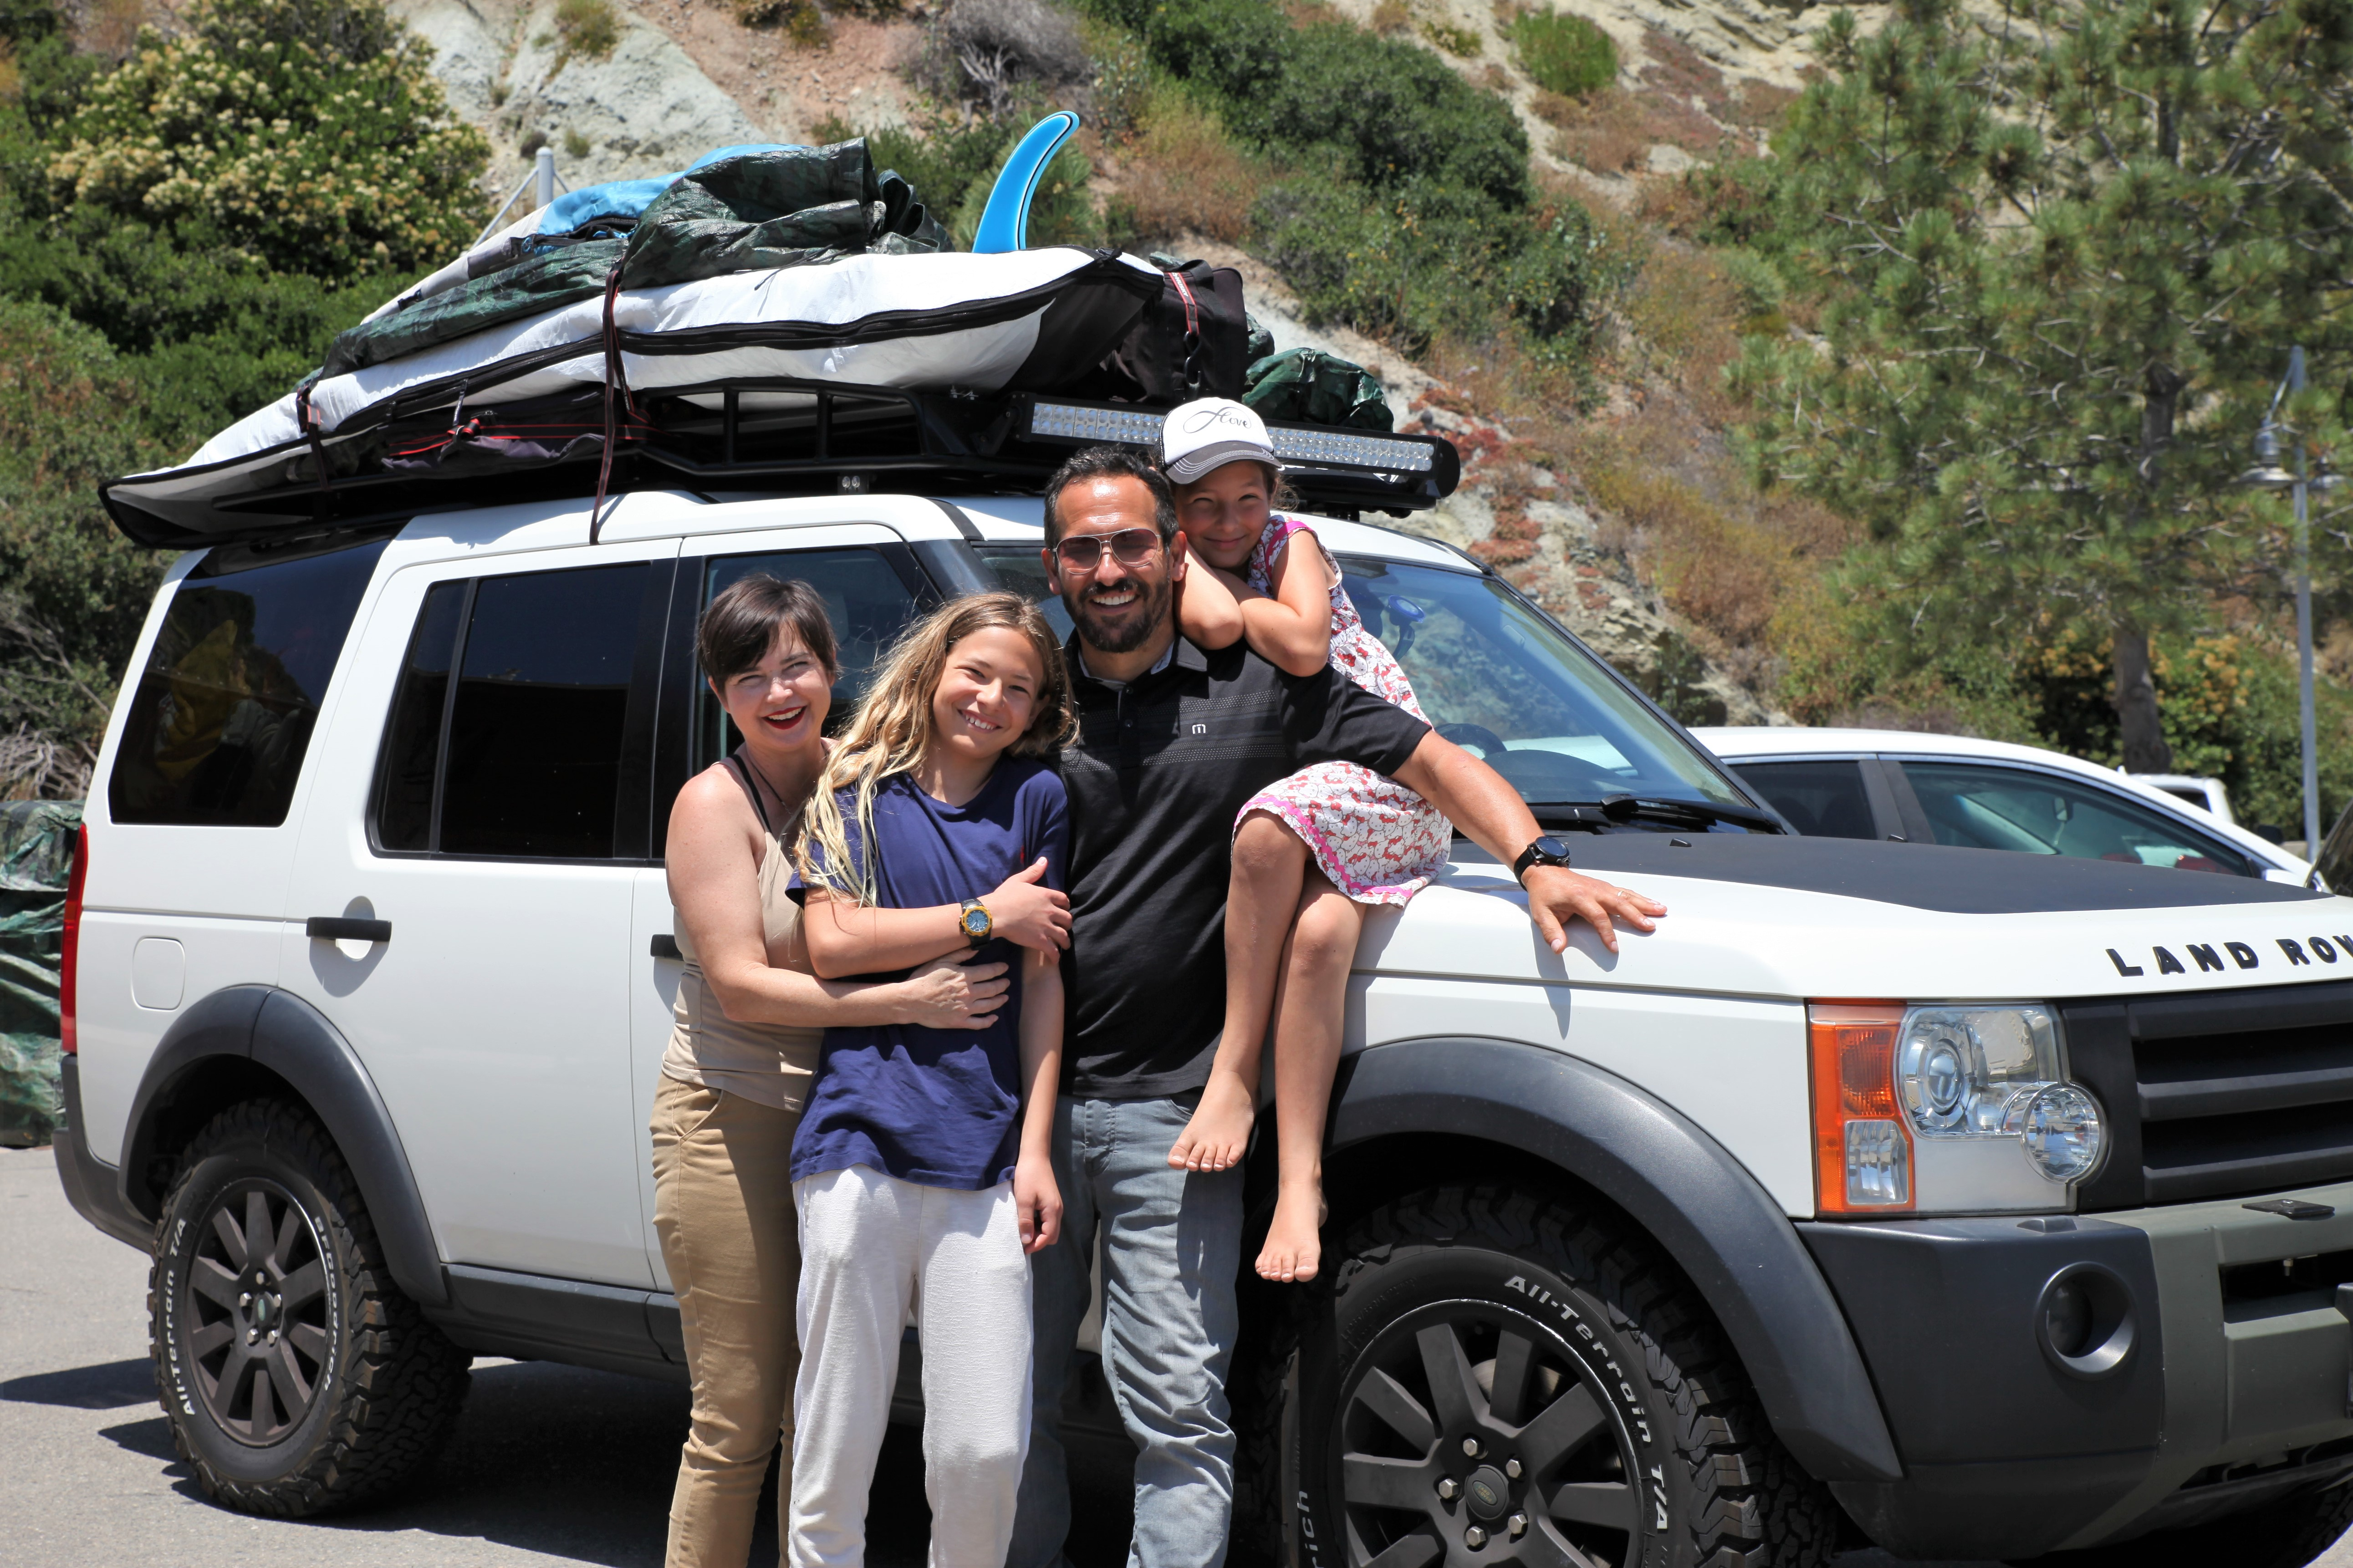 The Paskowitz family: Tracey, Doc, Adam and Ffanci prepare for another adventure. Photo: Adam Gilles